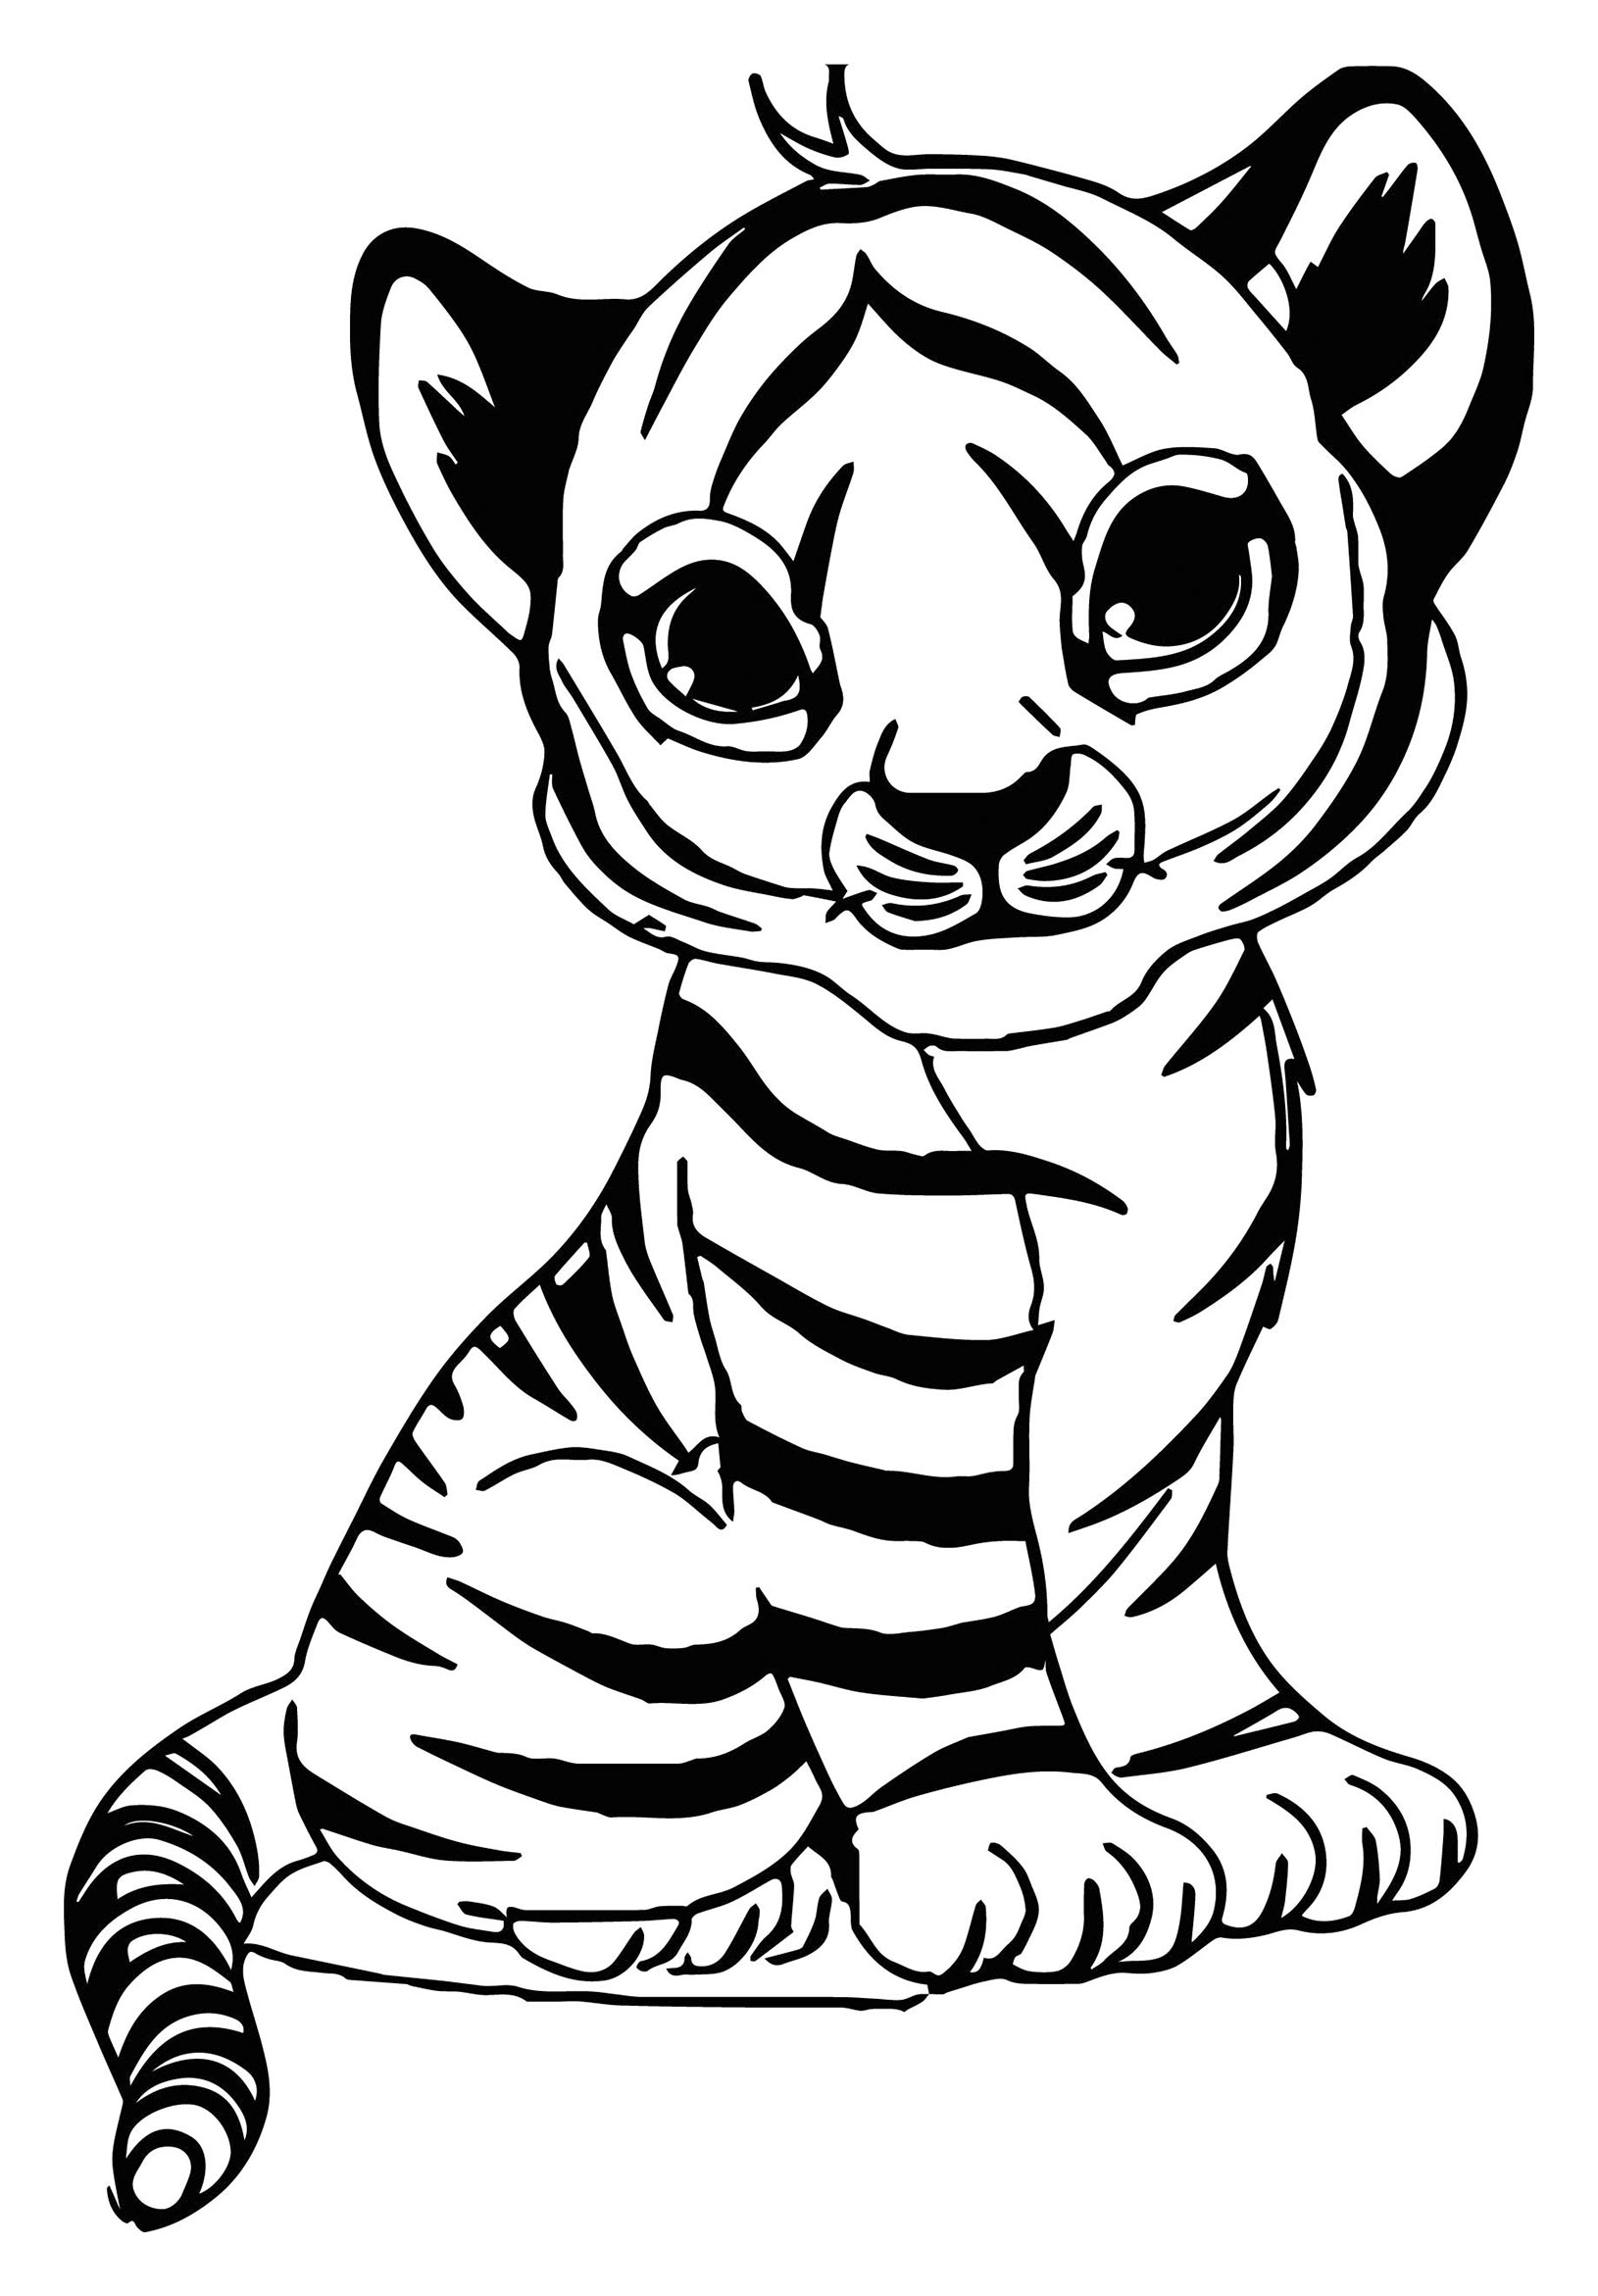 Simple Tigers coloring page